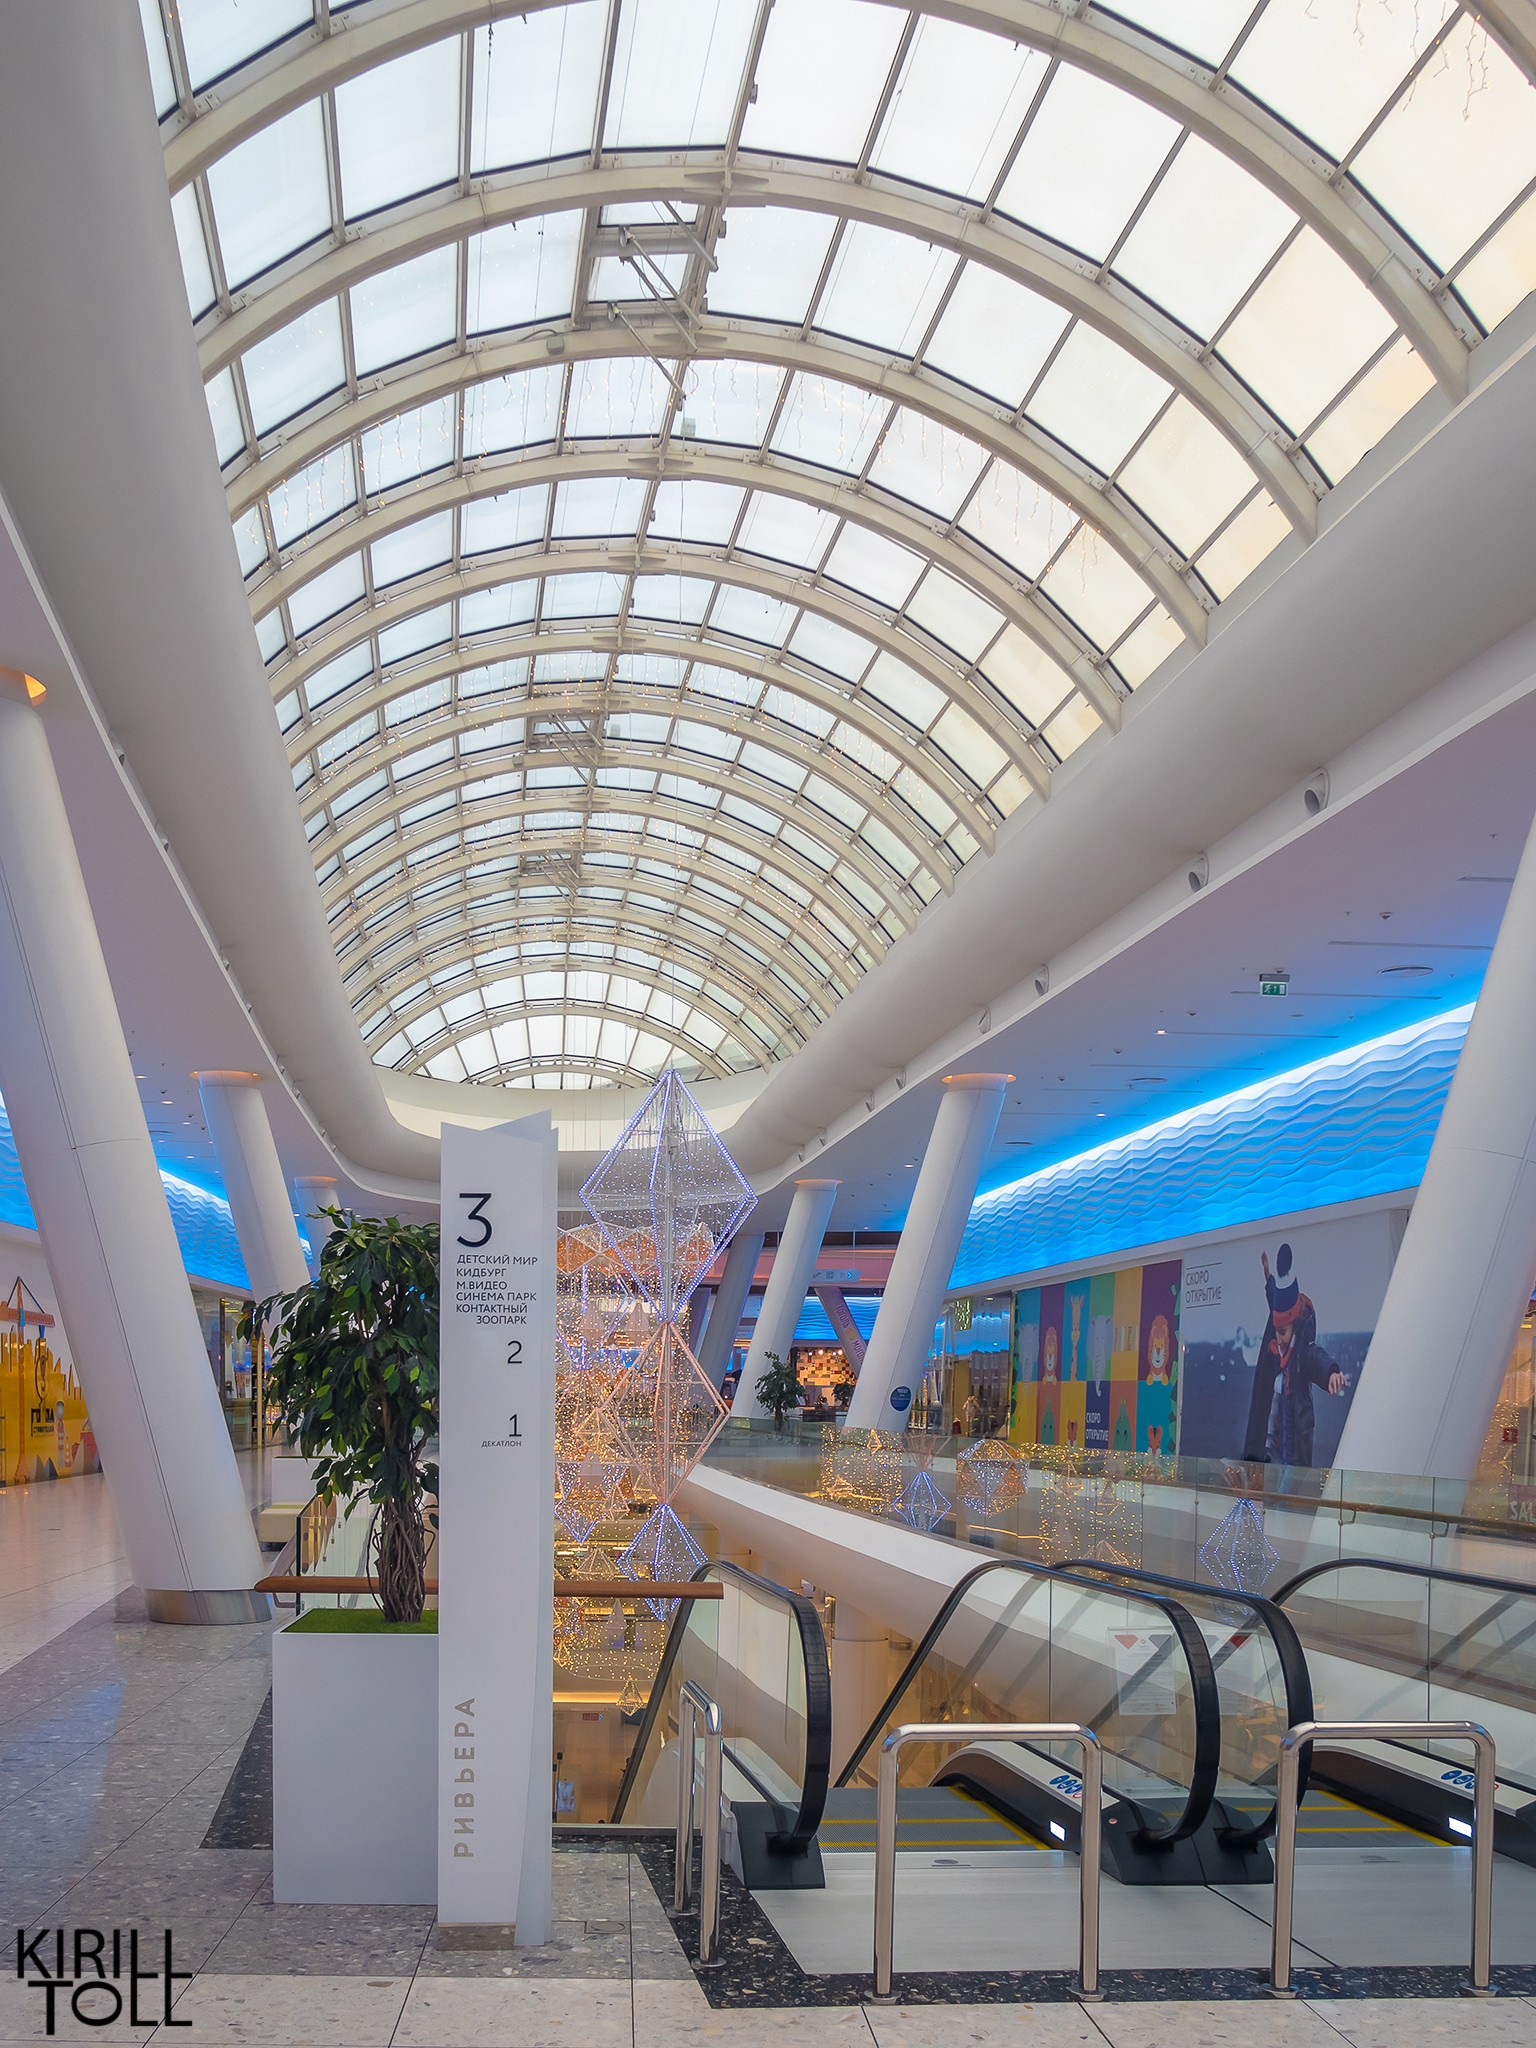 Galleries of shopping centers. Interior photography.